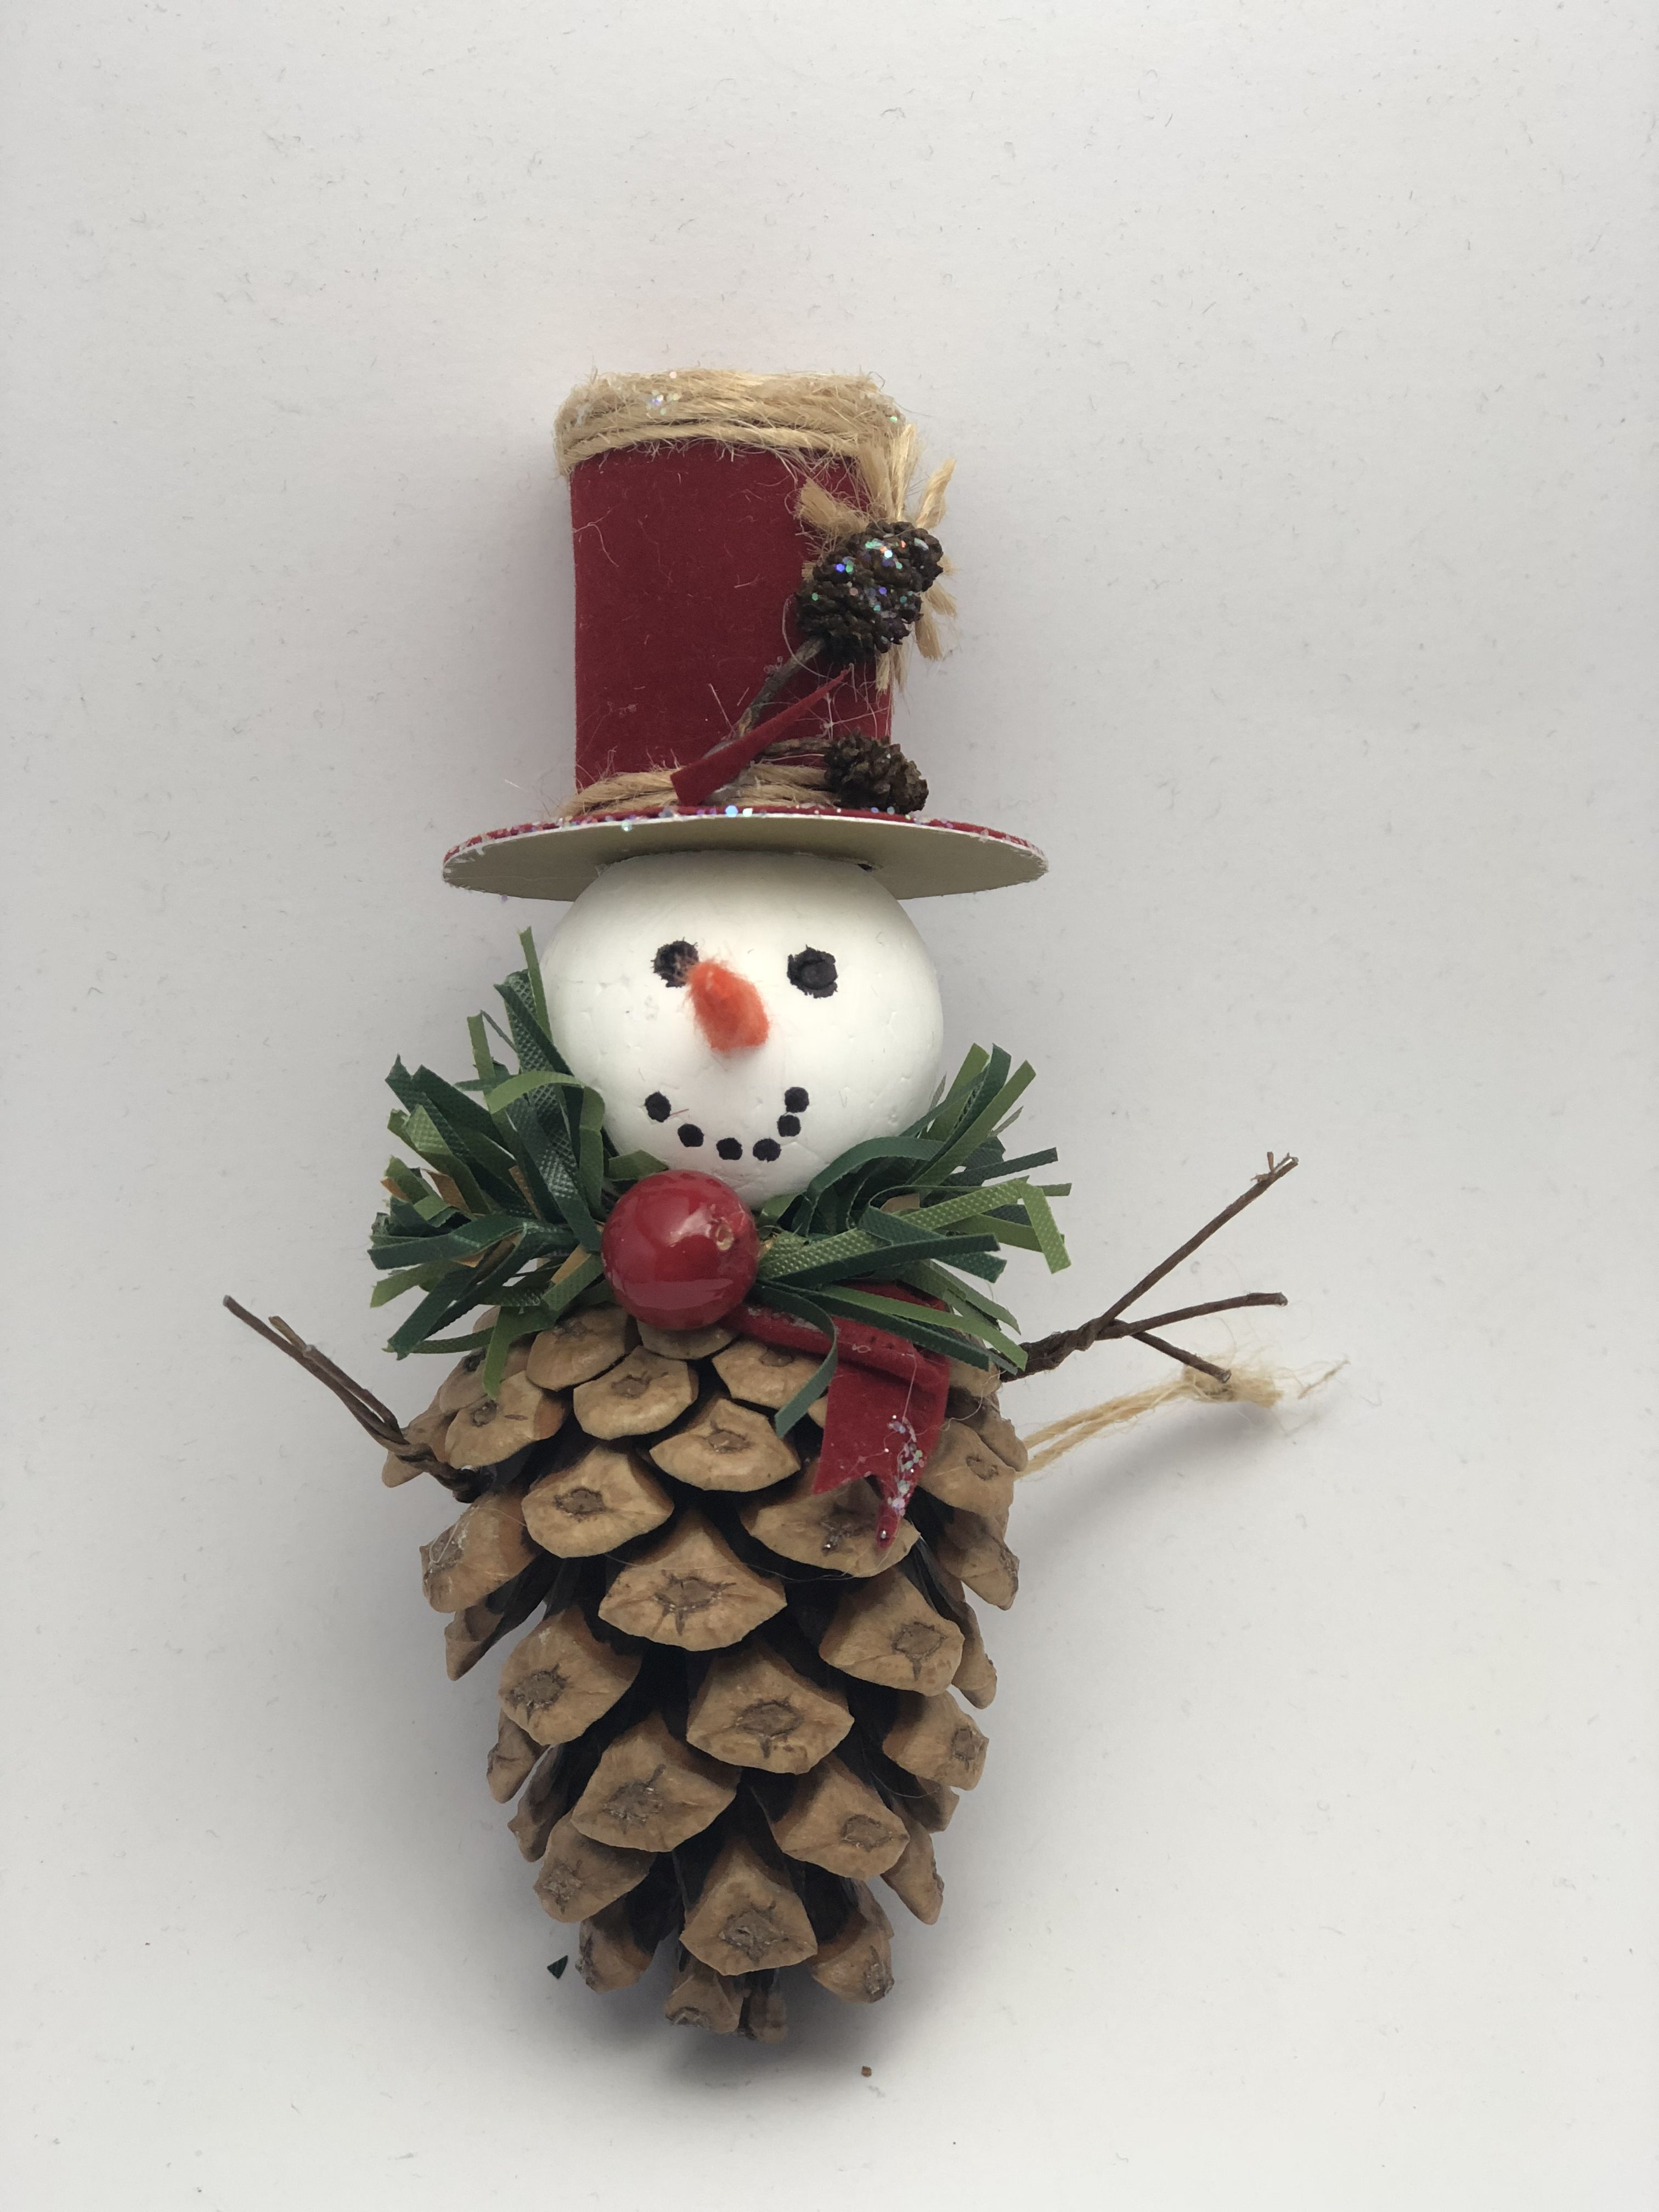 Pine Cone Snowman Pine Cone Christmas Decorations Christmas Ornaments Homemade Christmas Tree Decorations Diy